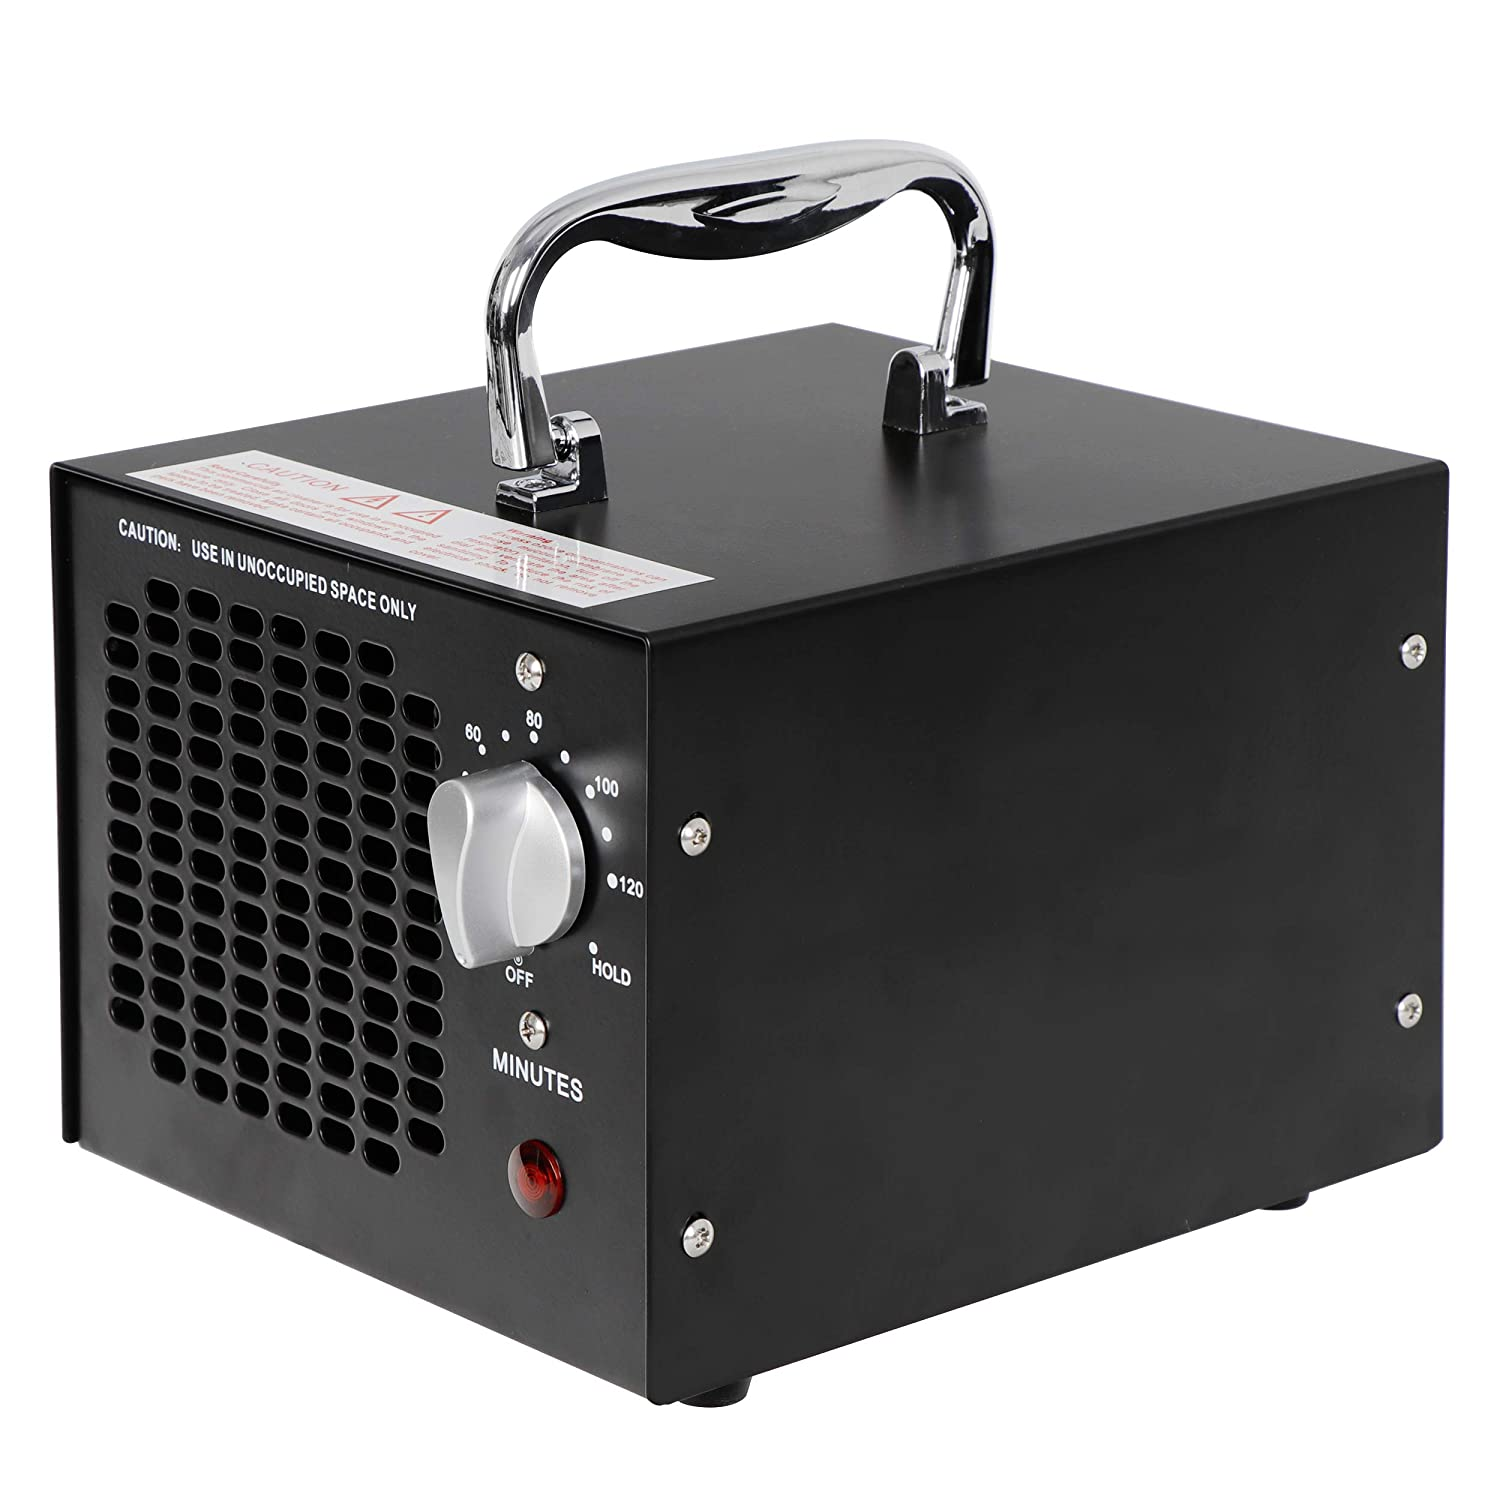 Oteymart 5000mg Commercial Ozone Generator Industrial Air Ionizer Eliminator Machine Home Air Deodorizer for Rooms Cars and Pets Room Black Smoke